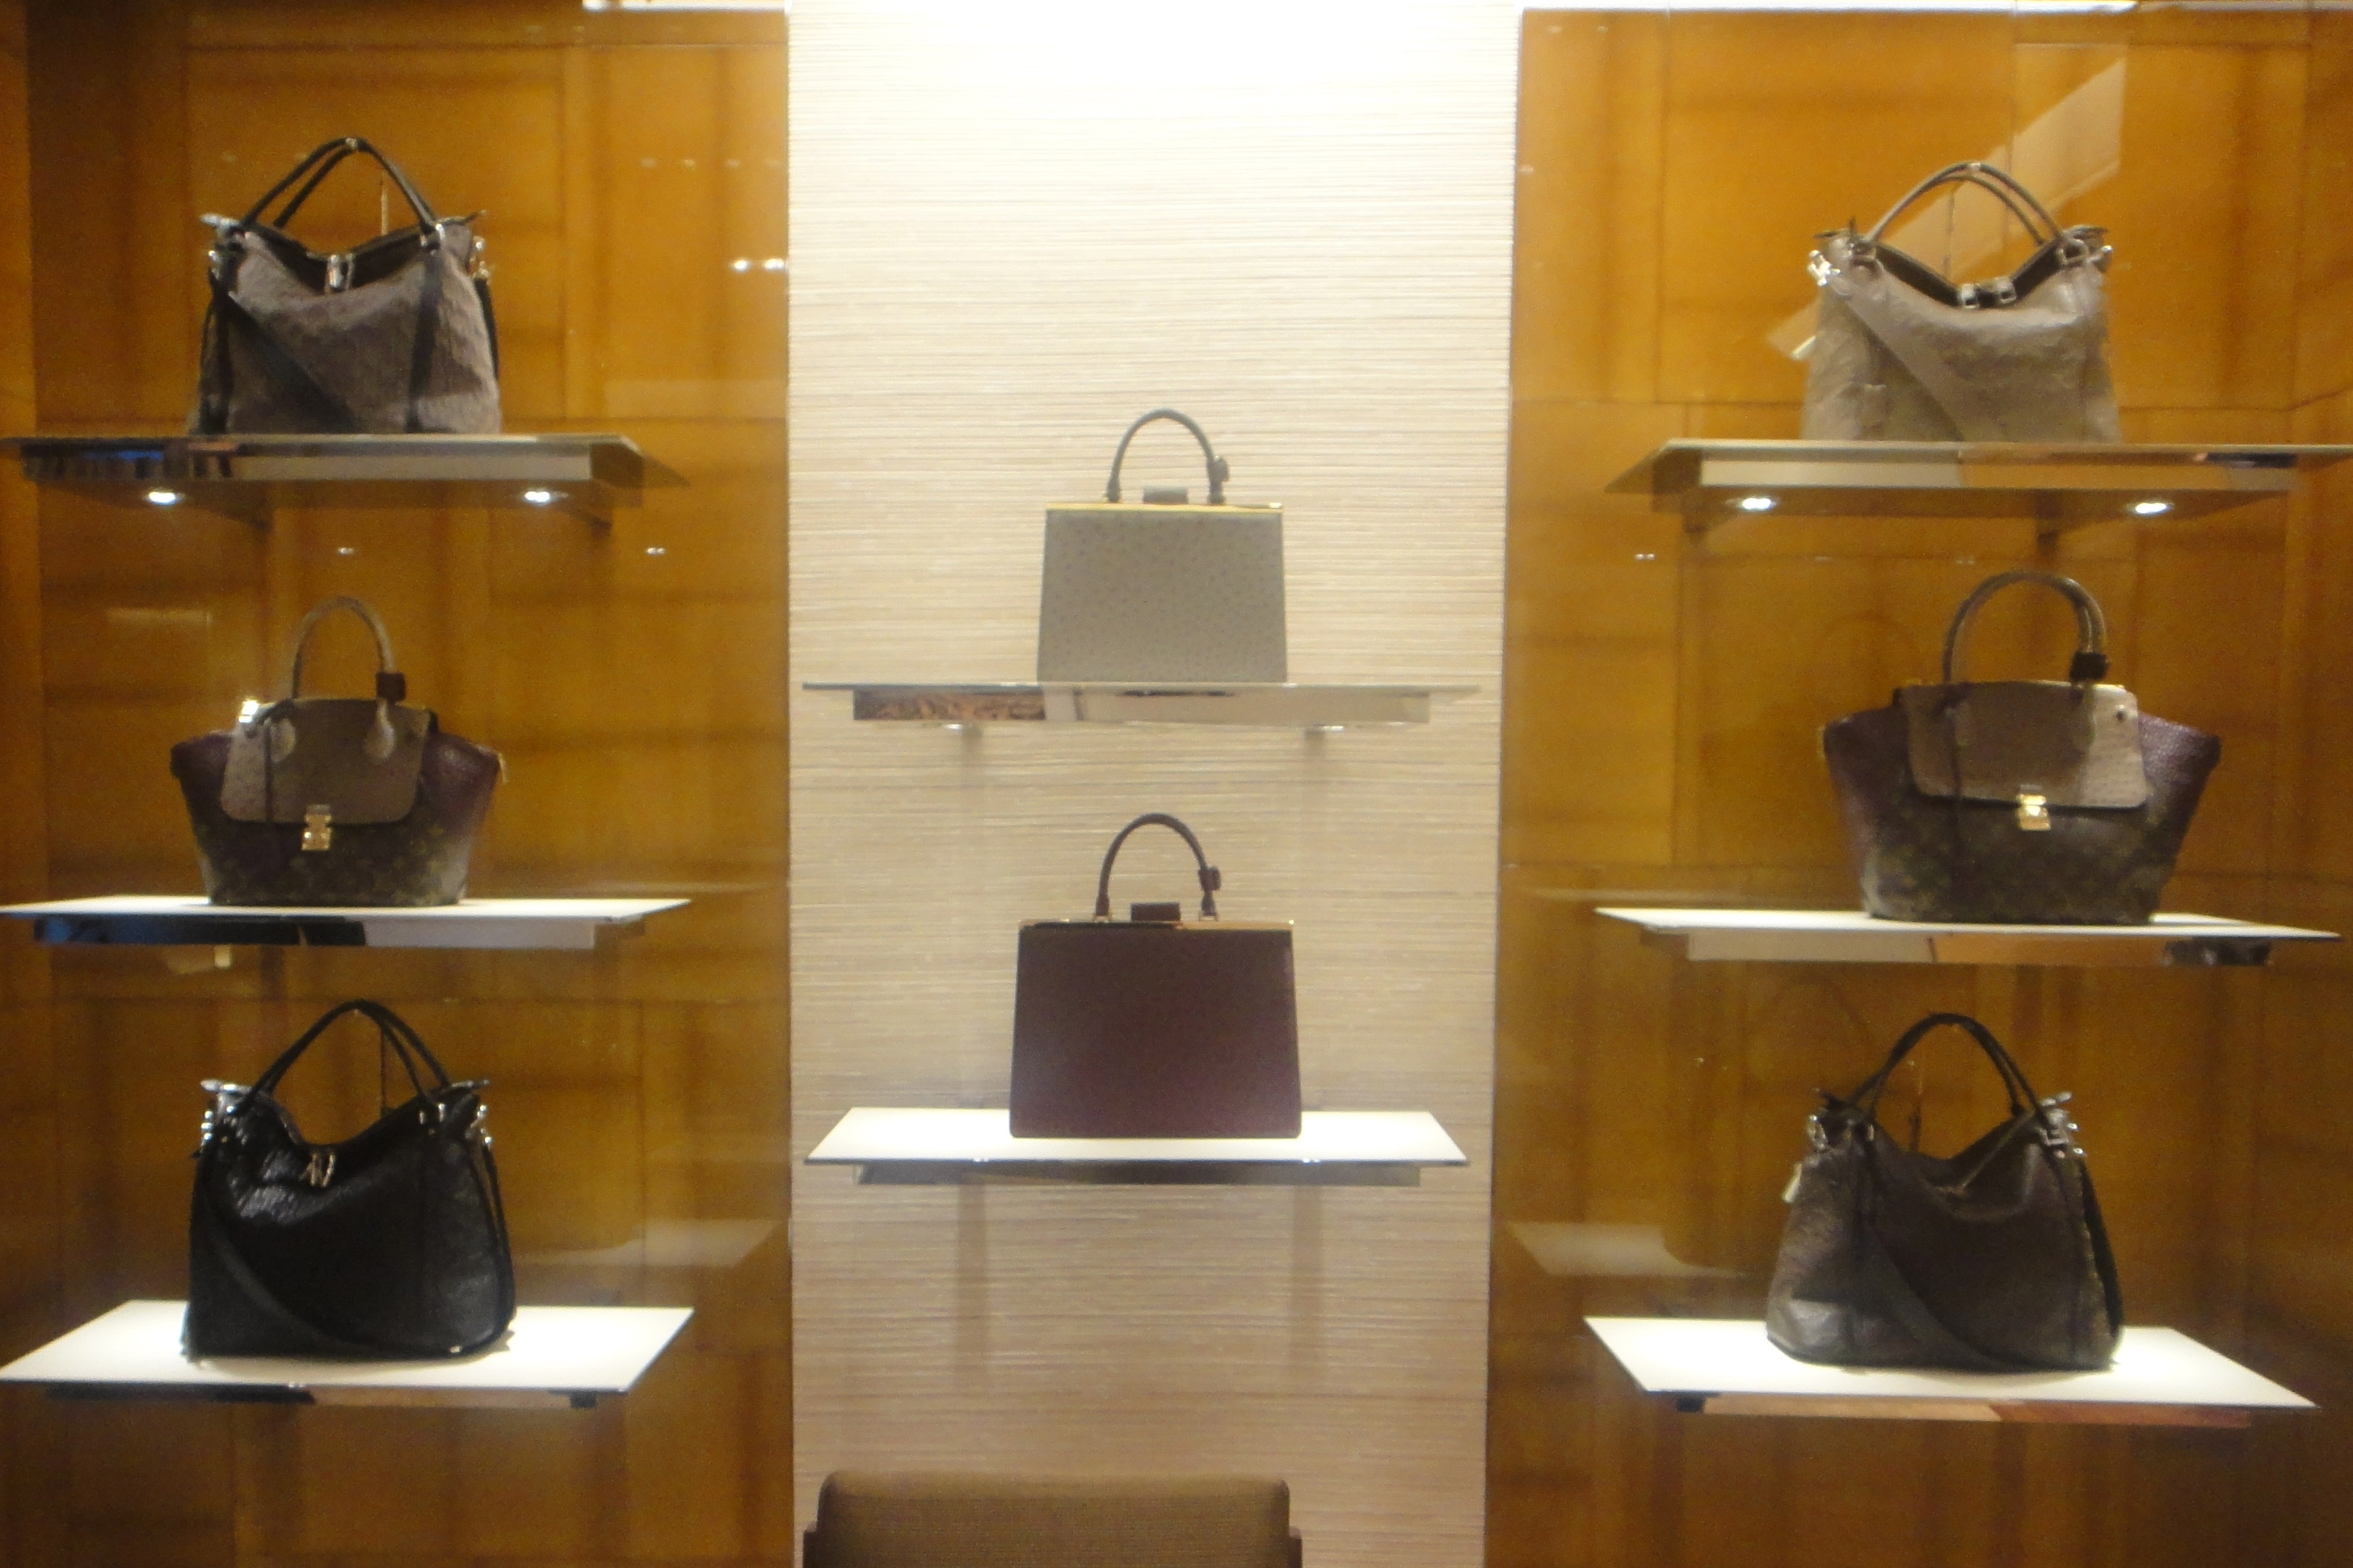 the latest handbags - Louis Vuitton - aktuellste Handtaschen